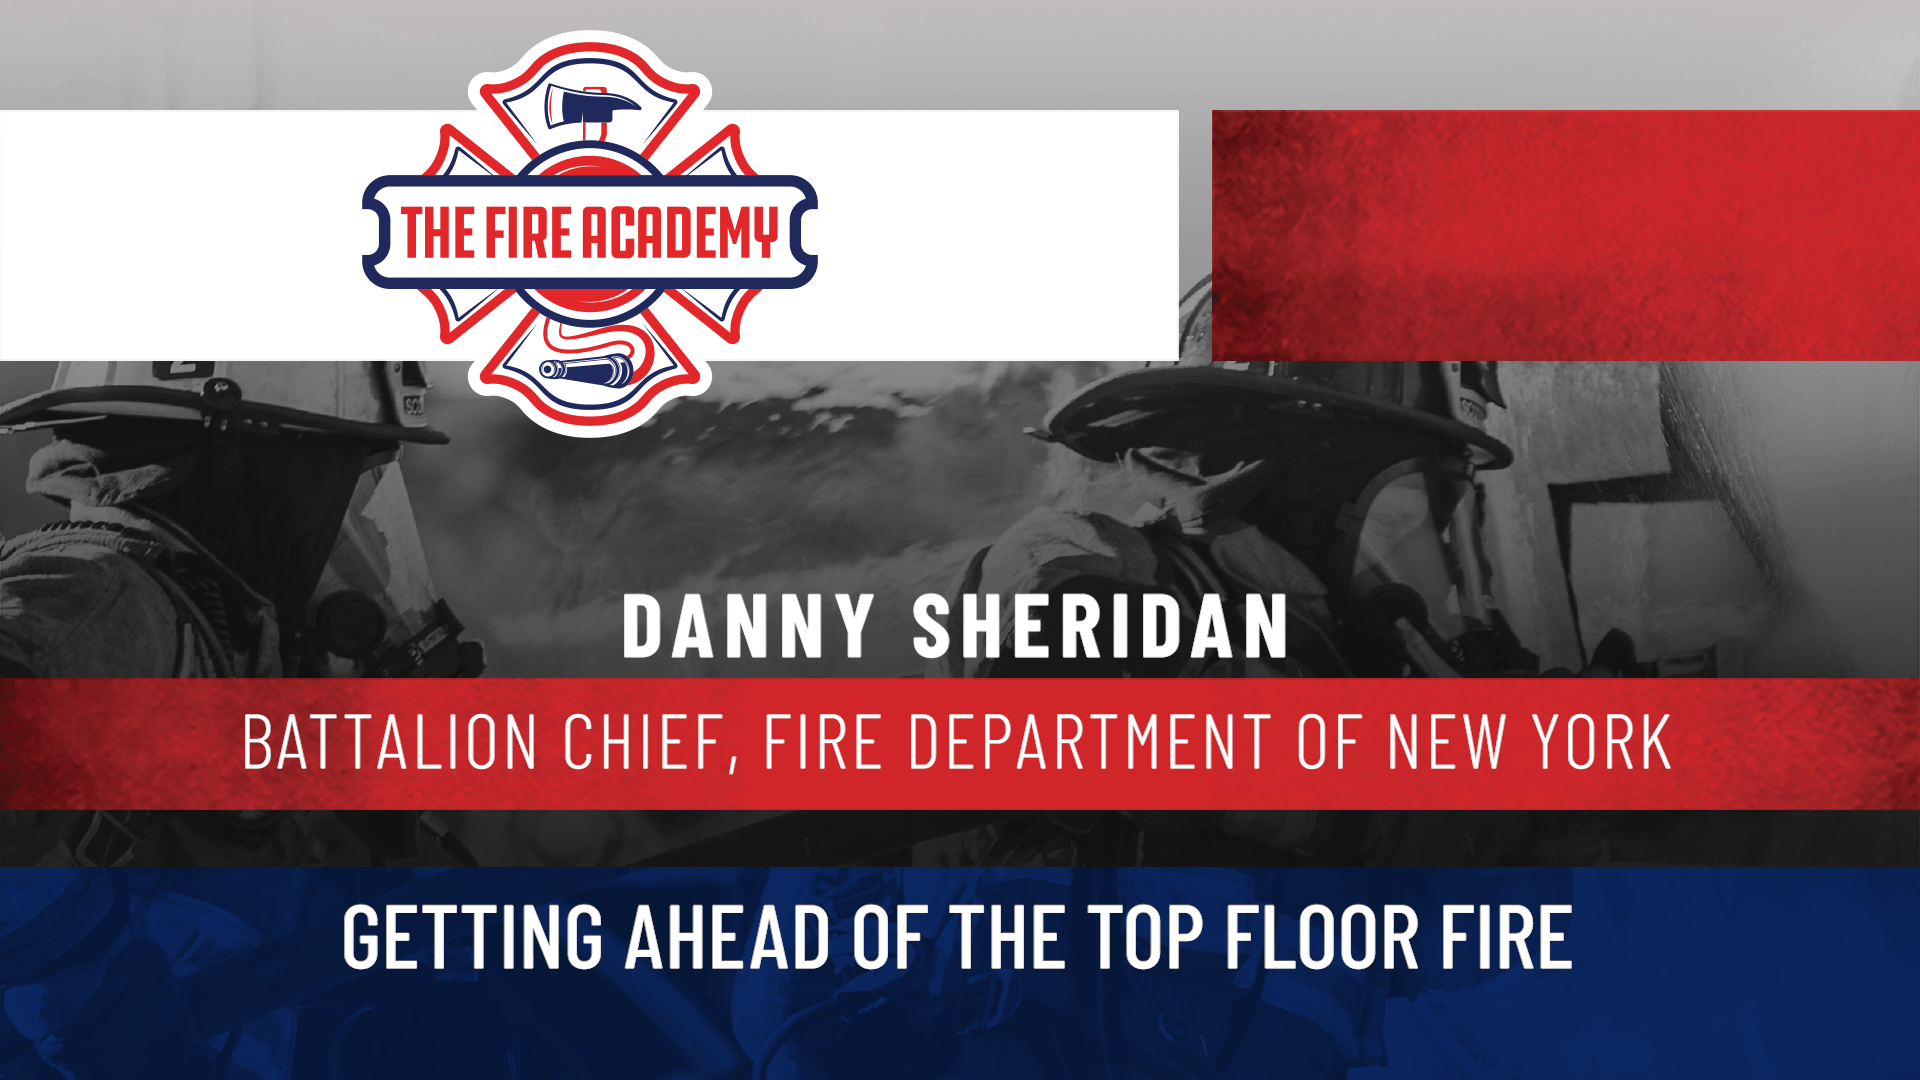 Getting Ahead of the Top Floor Fire